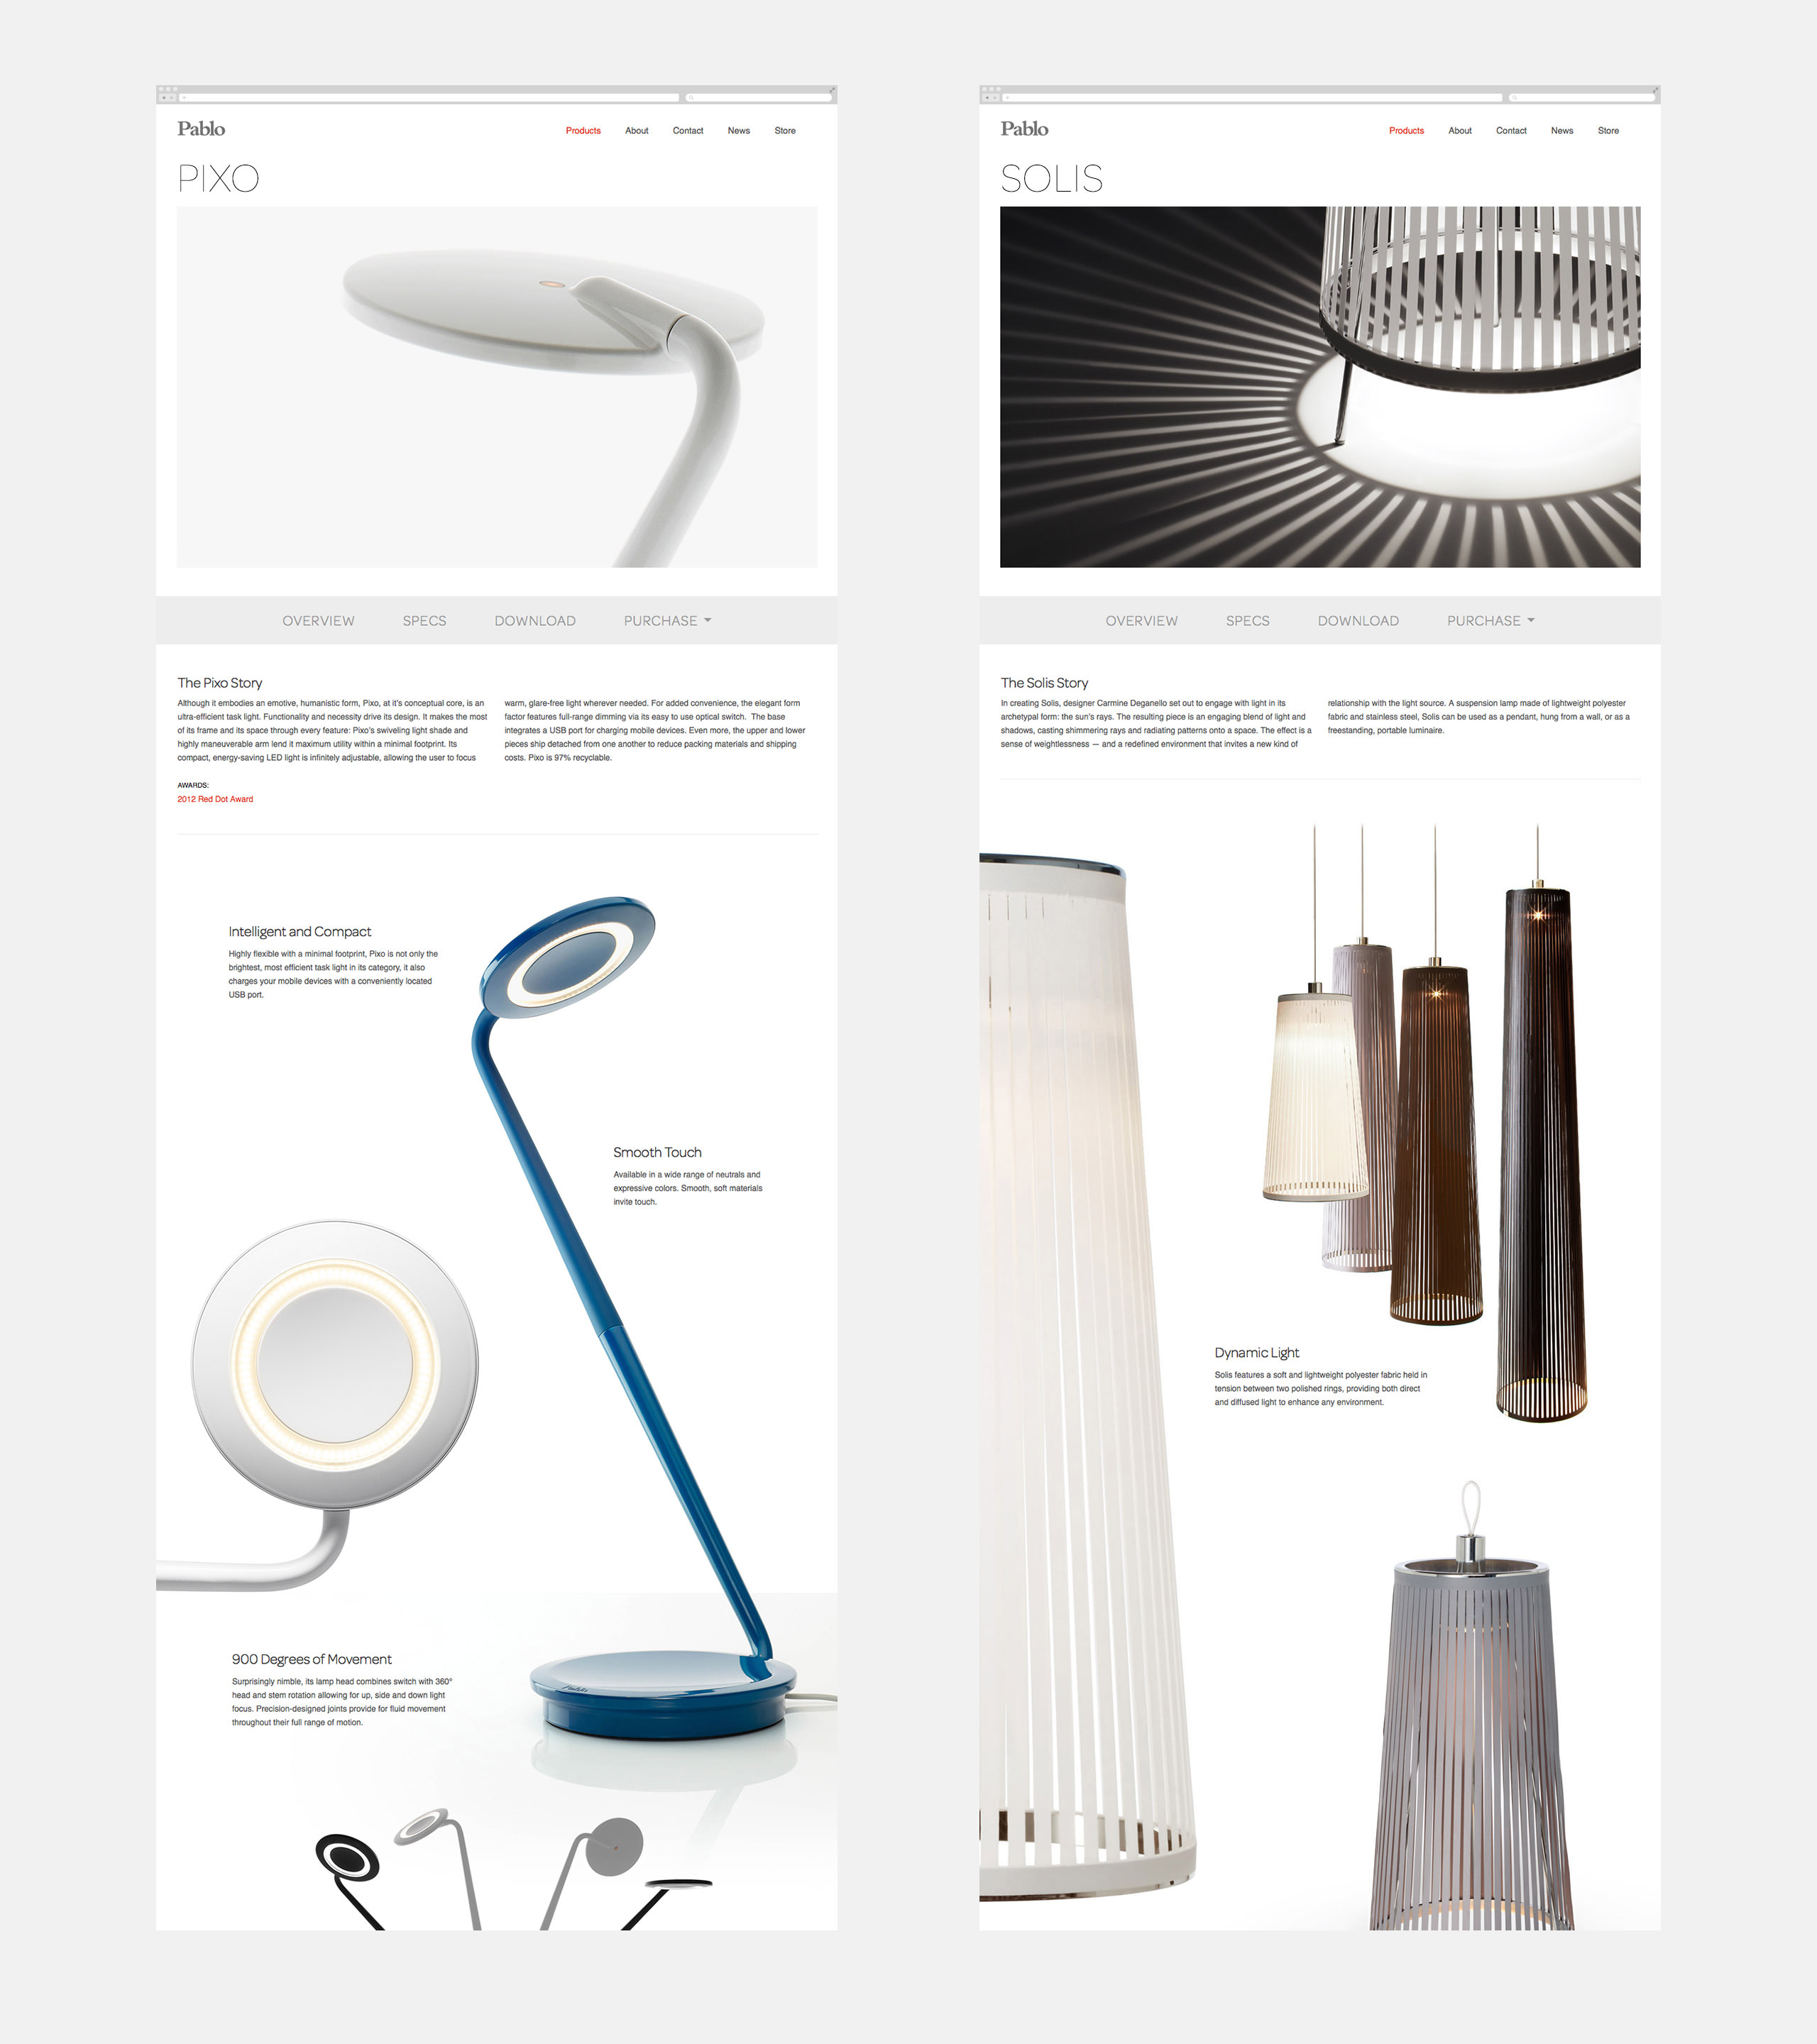 Pablo Designs Website Product Pages - Pixo and Solis